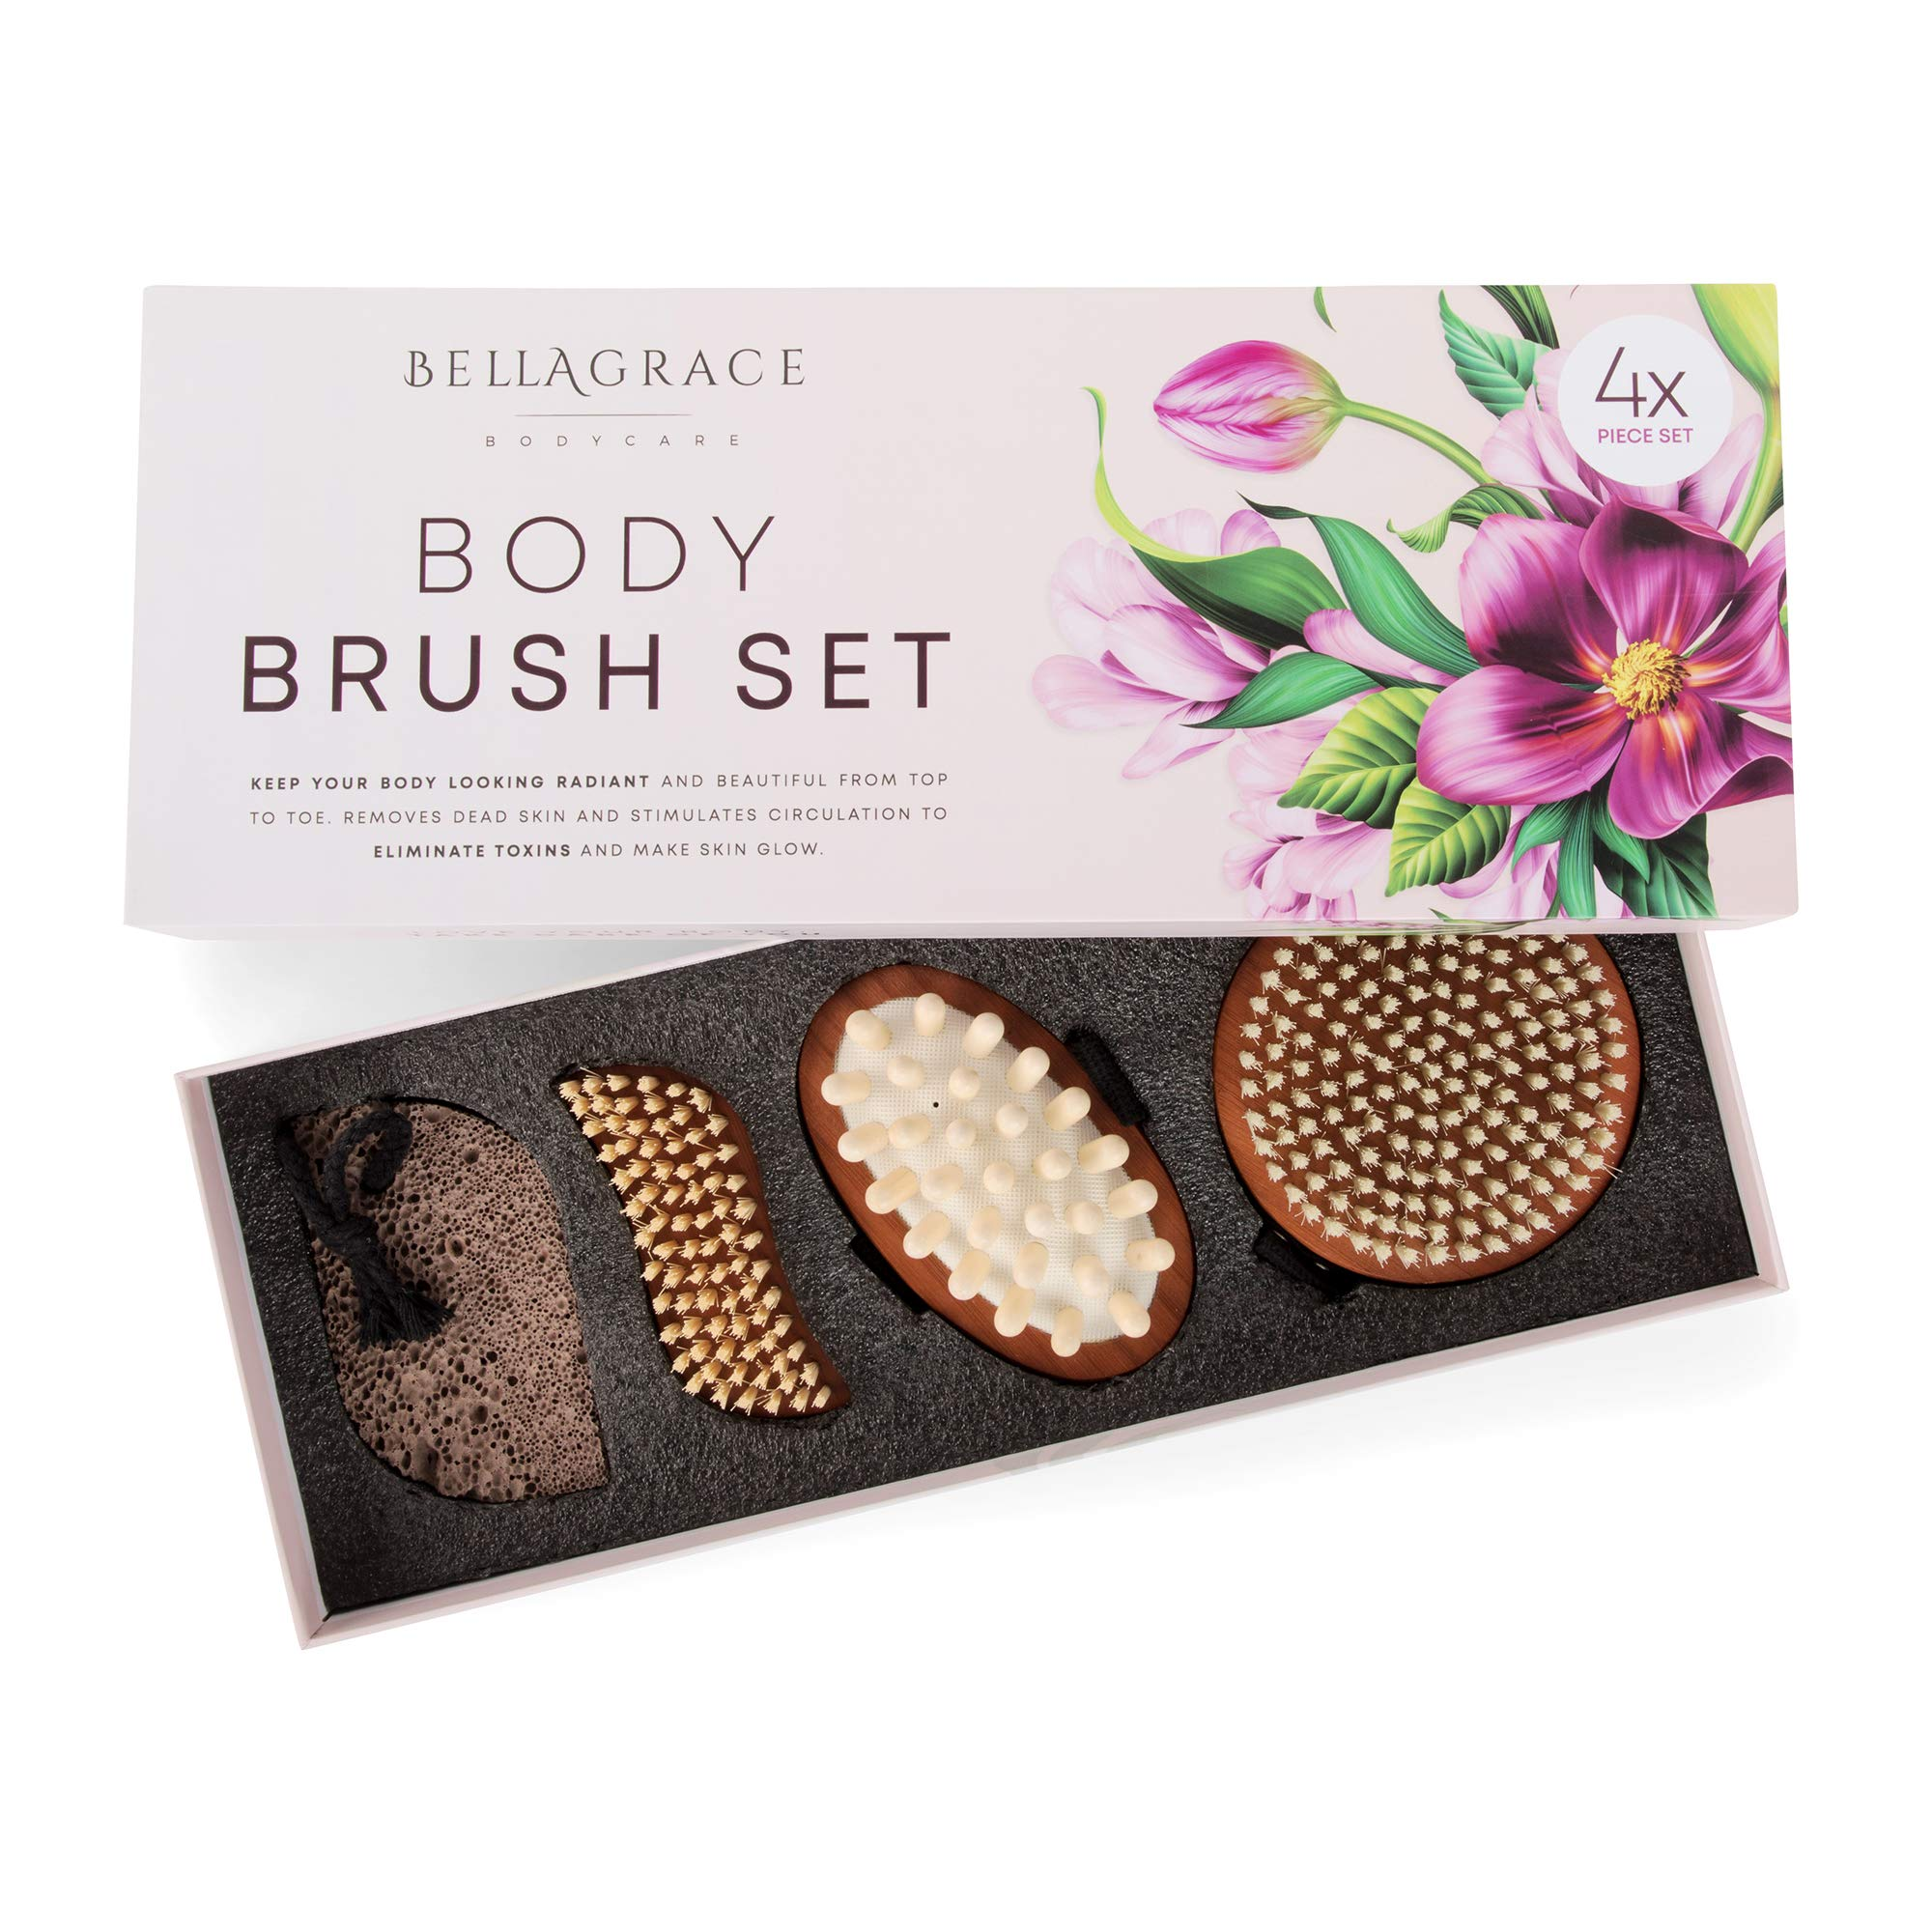 Dry Brush Body Brushes, Set of 4, Non-Toxic - Bamboo Beauty Pack for Dry Skin, Cellulite - Brushing Exfoliation Kit - Cleansing, Massaging, Manicure Sets for Arms, Legs, Hands, Feet, Nails